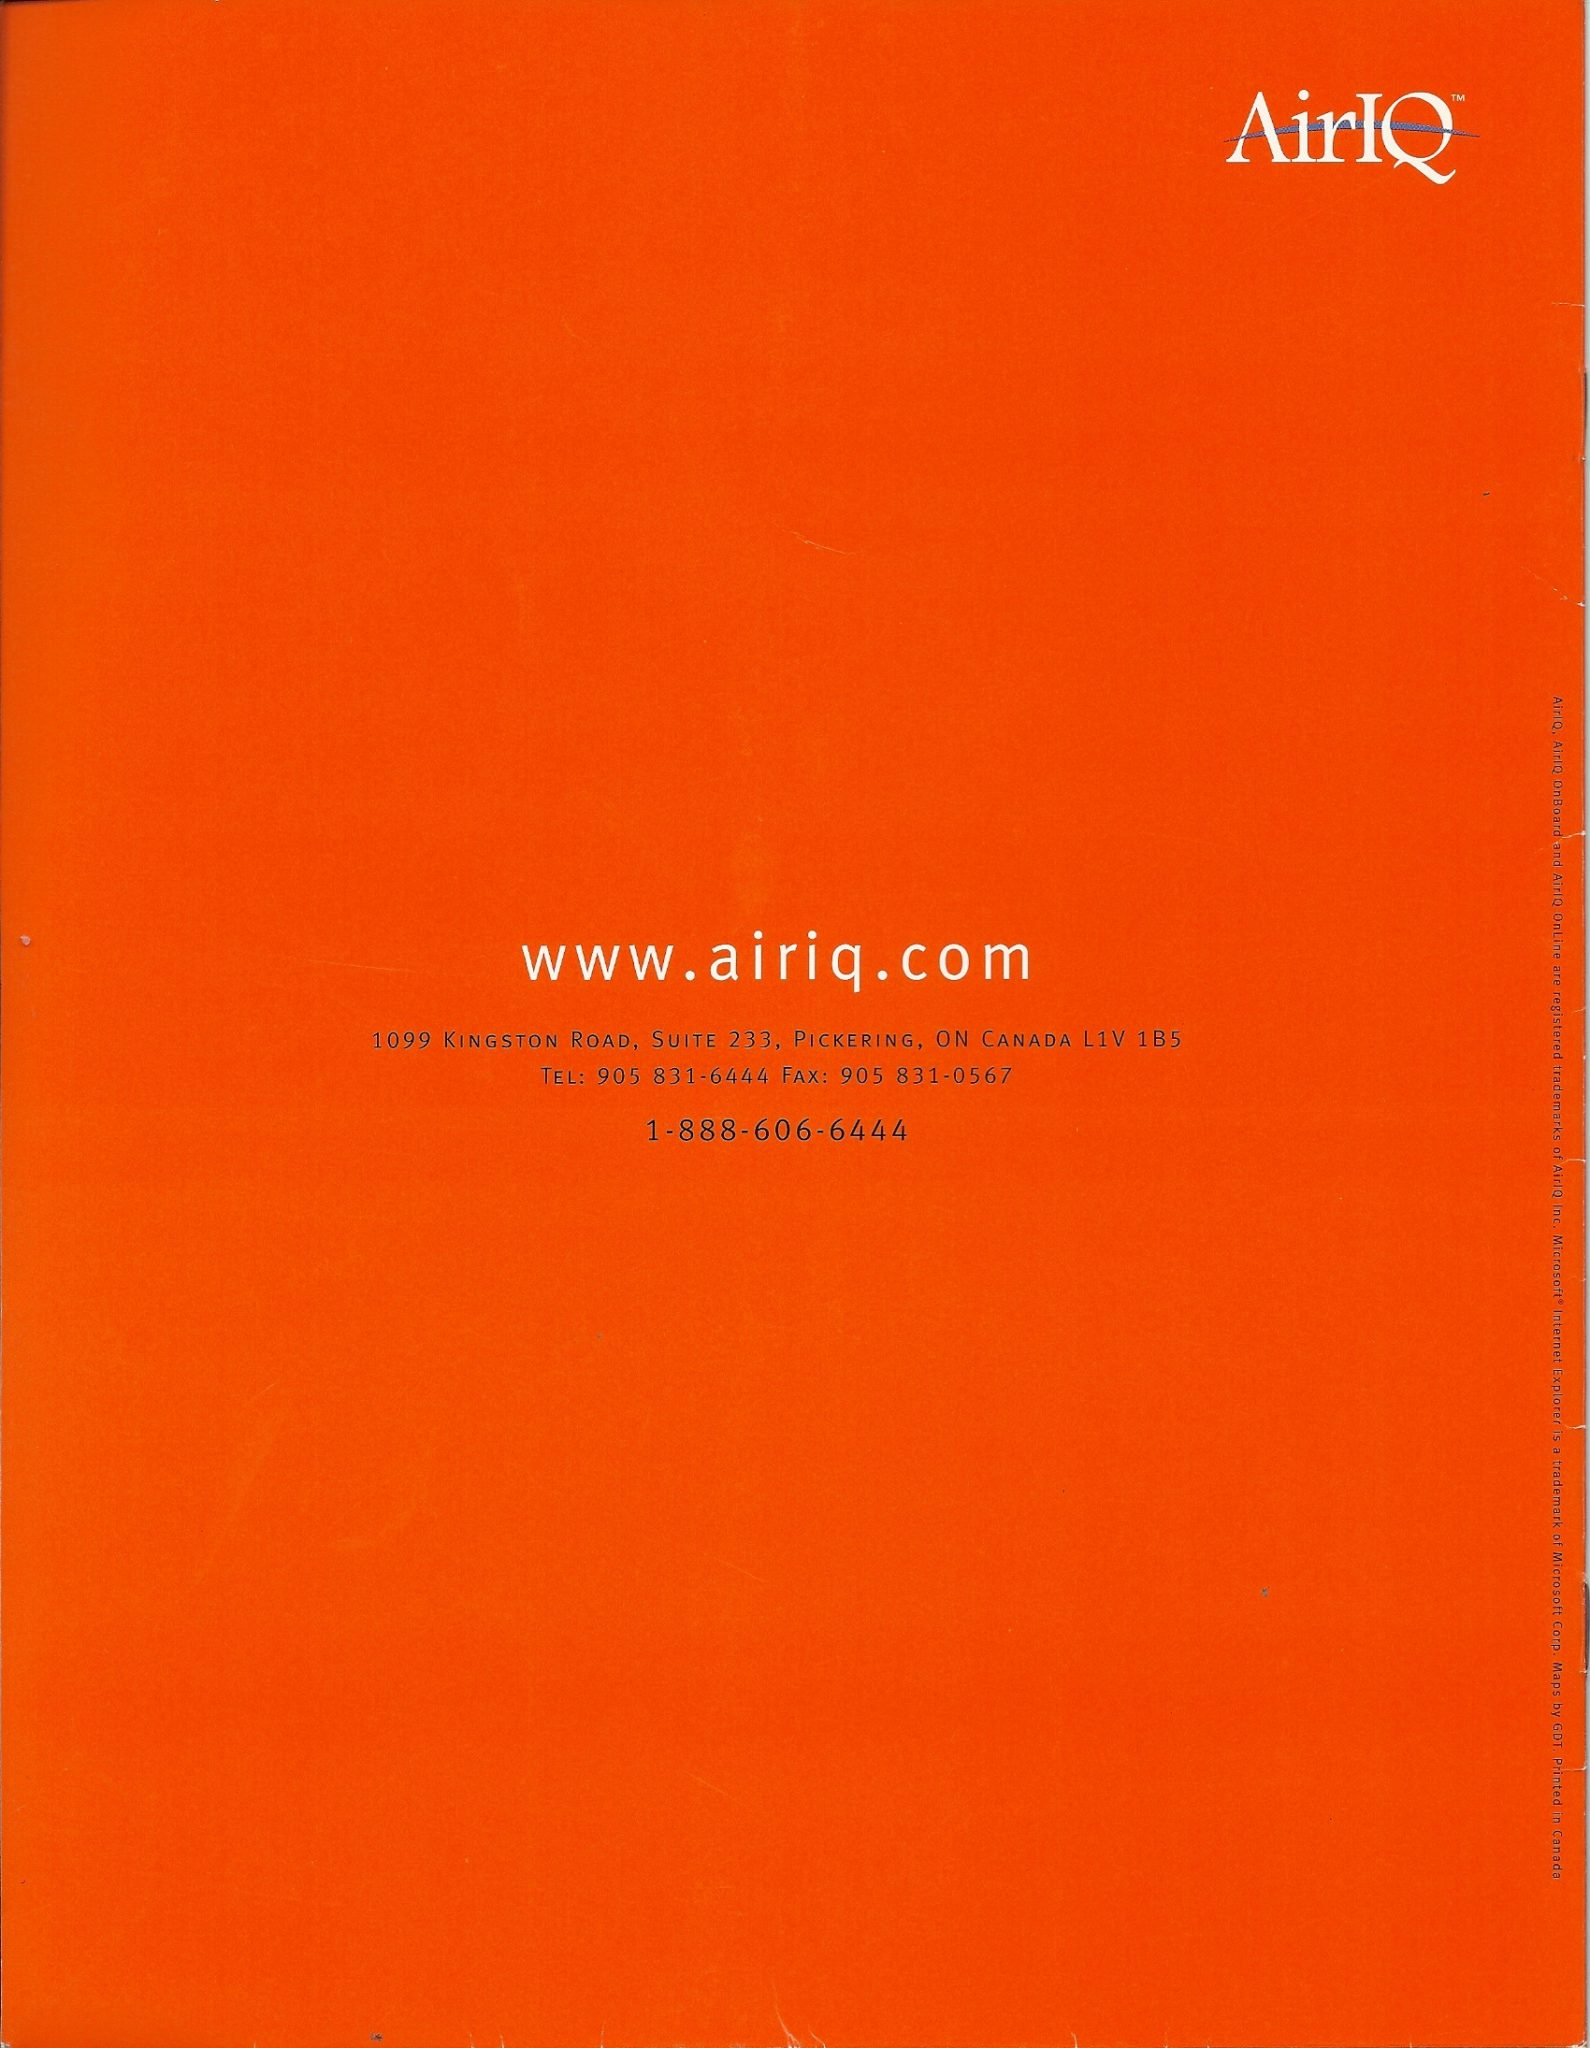 AirIQ Brochure (p 12 of 12)